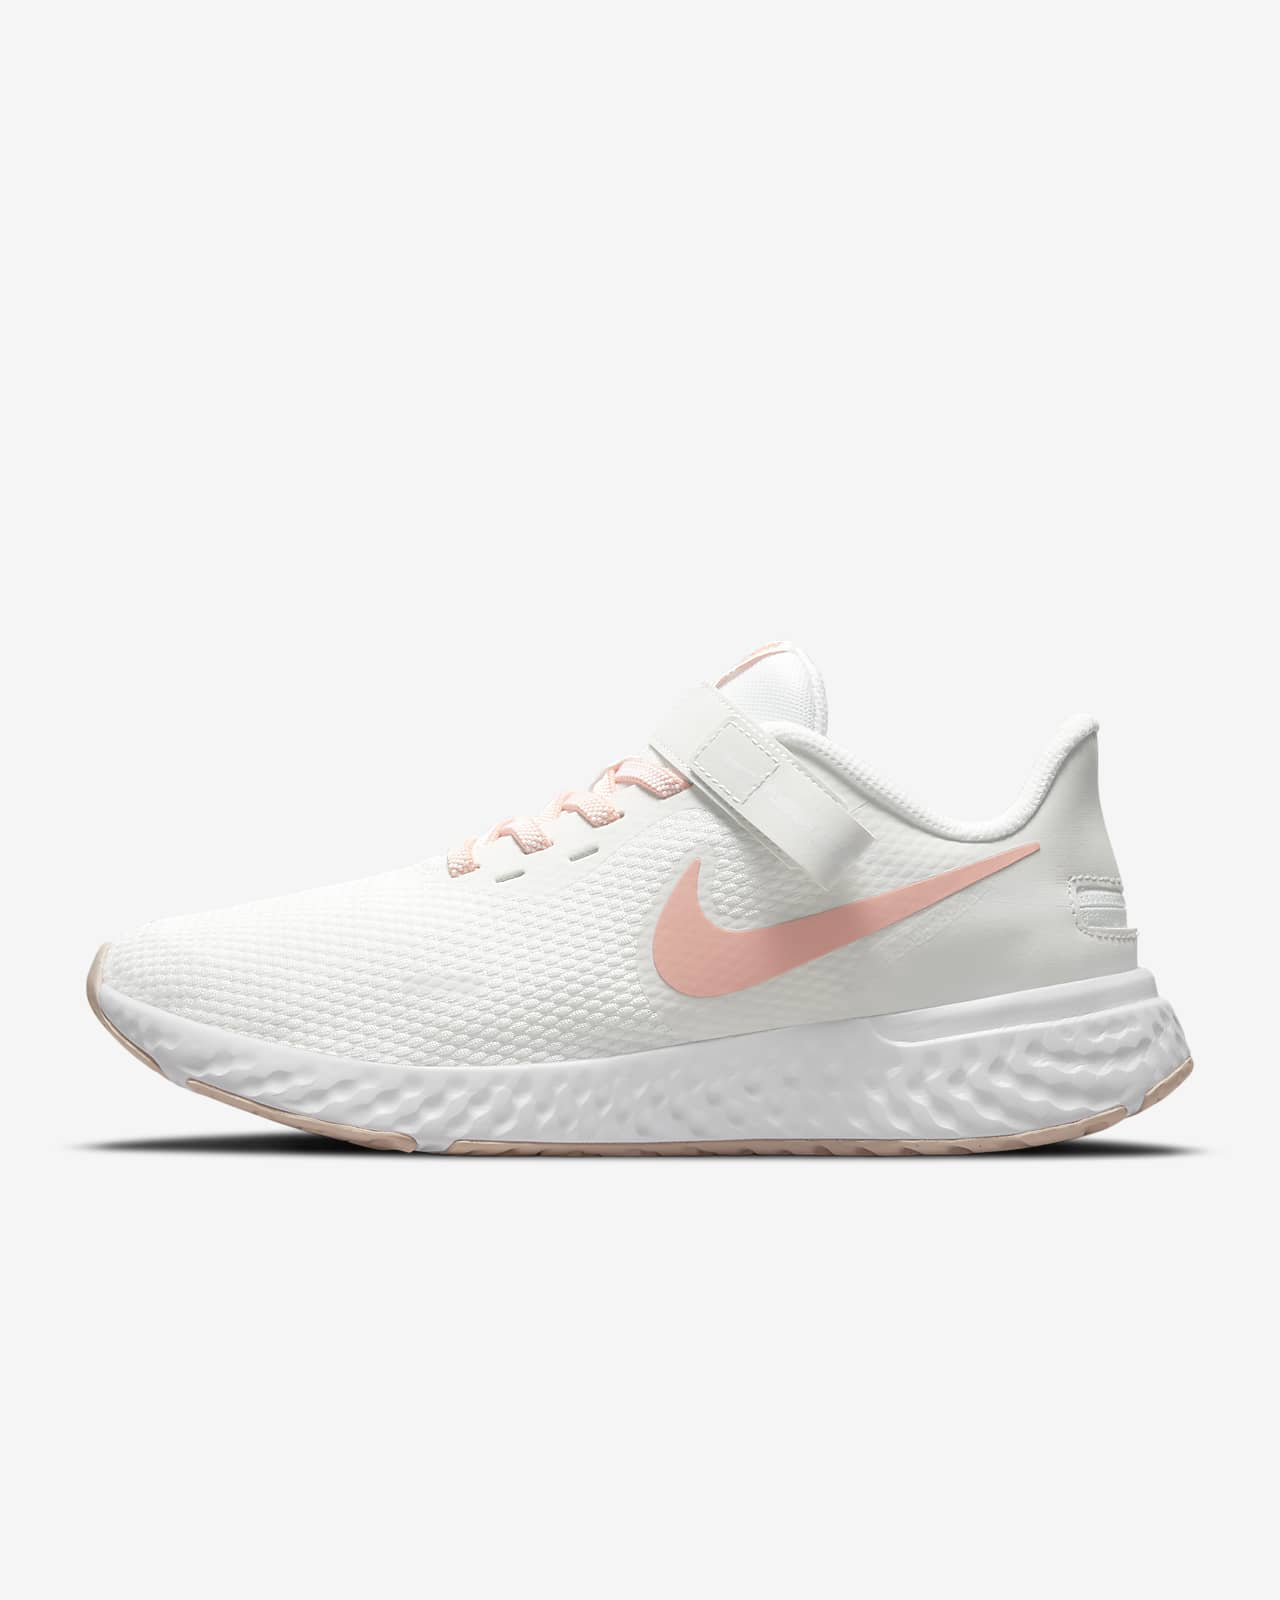 Nike Revolution 5 FlyEase Women's Easy On/Off Road Running Shoes